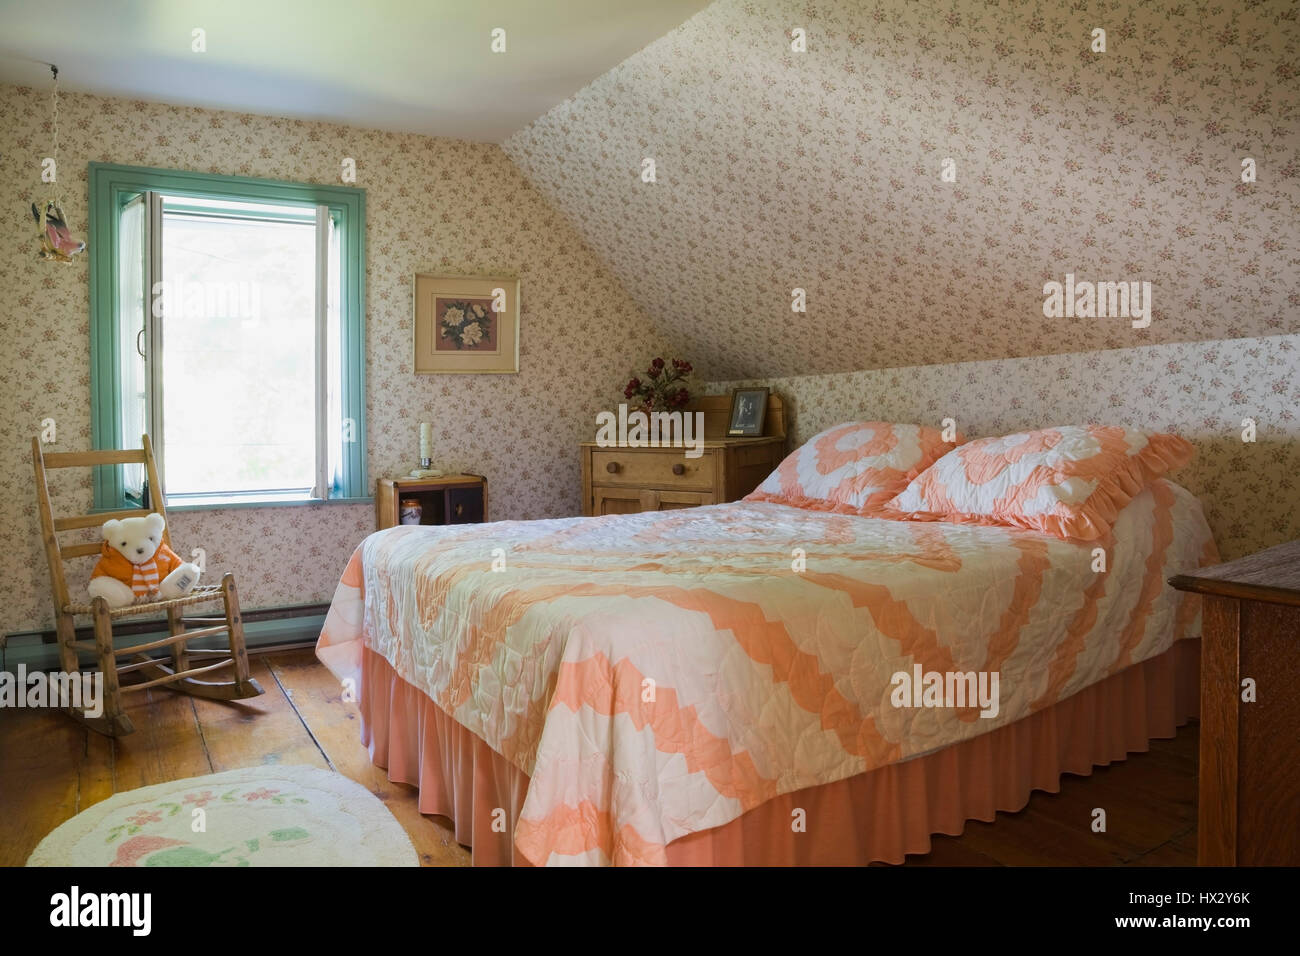 Queen Size Bed With Orange Bedspread And Furnishings In Bedroom Of Stock Photo Alamy